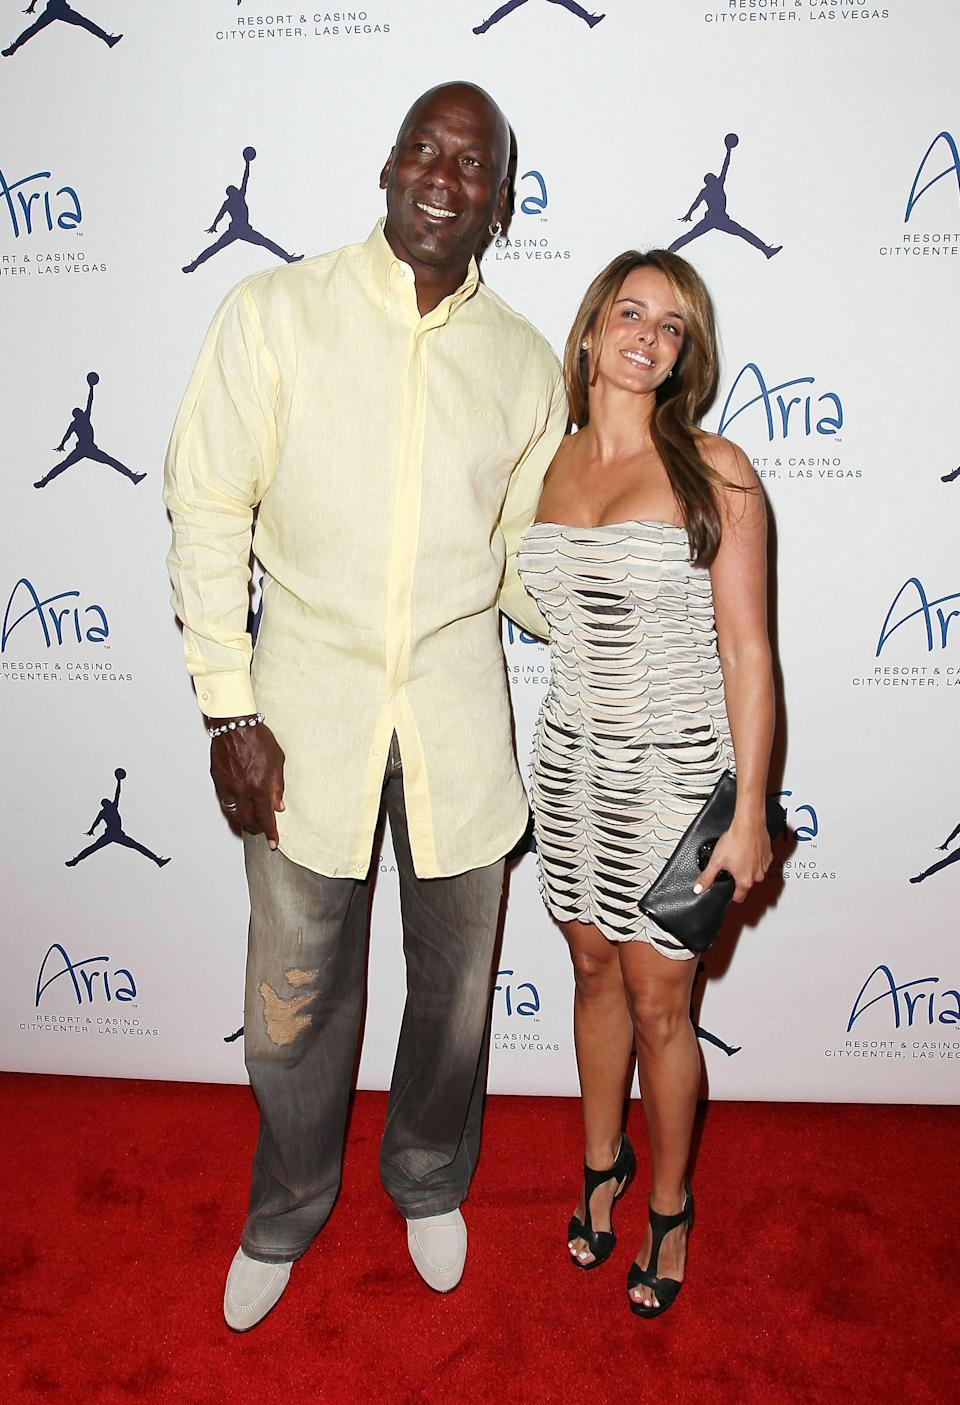 **File Photos** Michael Jordan has announced that he is engaged to his longtime girlfriend Yvette Prieto Michael Jordan and Yvette Prieto Michael Jordan Celebrity Invitational Welcome Reception at Haze night club at Aria Las Vegas, Nevada - 31.03.11 Mandatory Credit: Judy Eddy/WENN.com